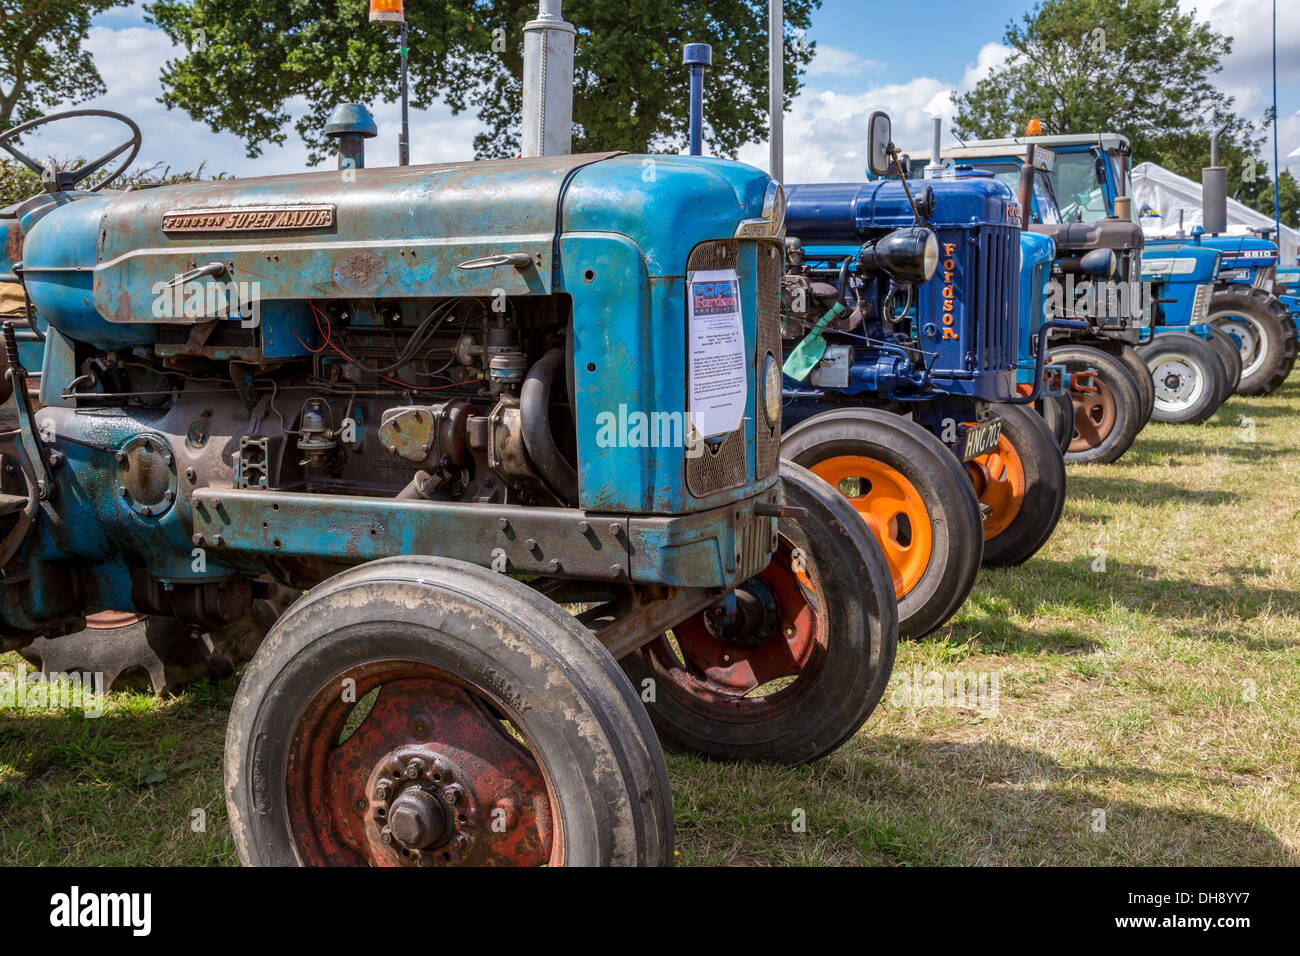 ford cgi tractor s yesterday viewit bin tractors